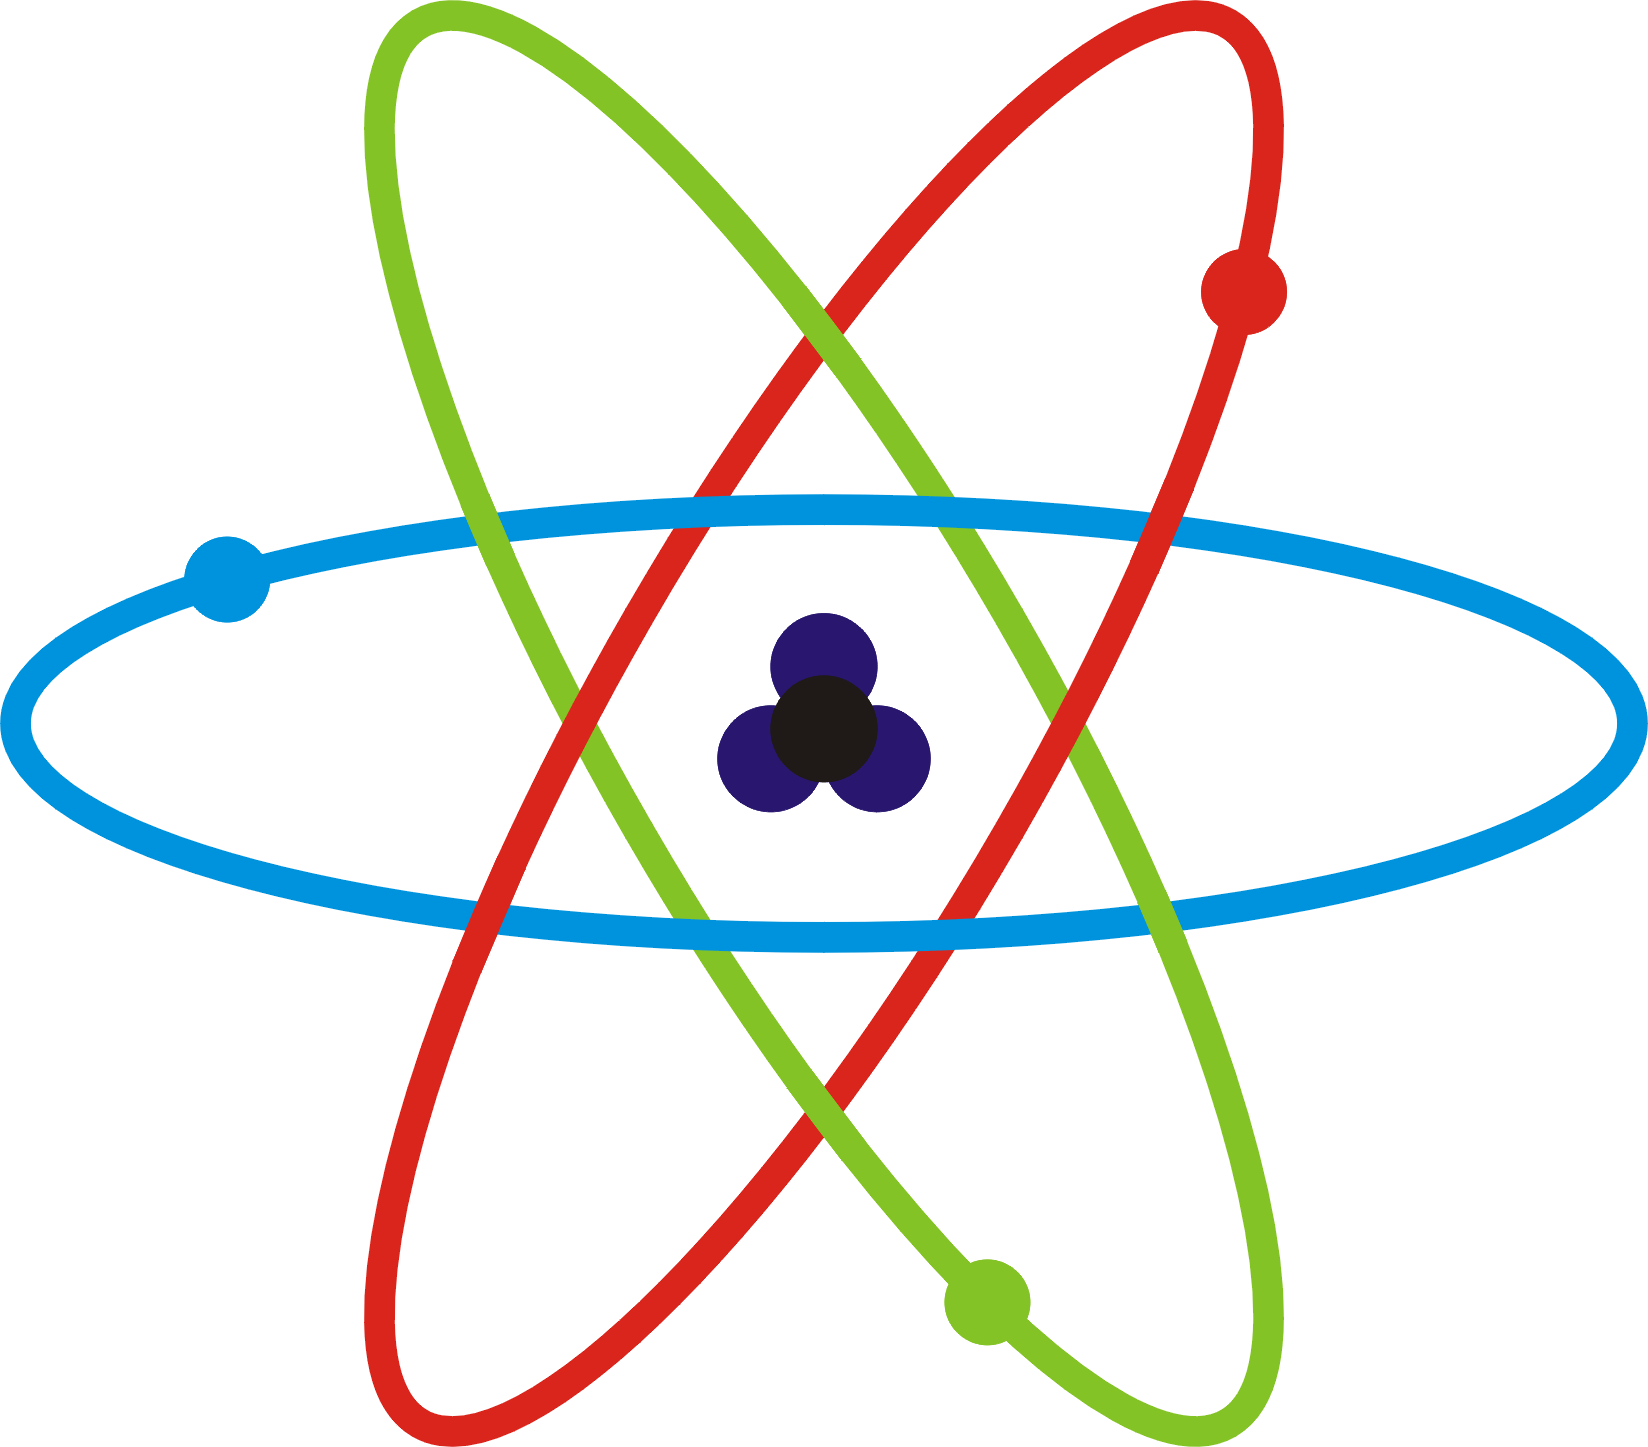 atomic symbol diagram wiring 2005 dodge ram 2500 file schematicky atom png wikimedia commons